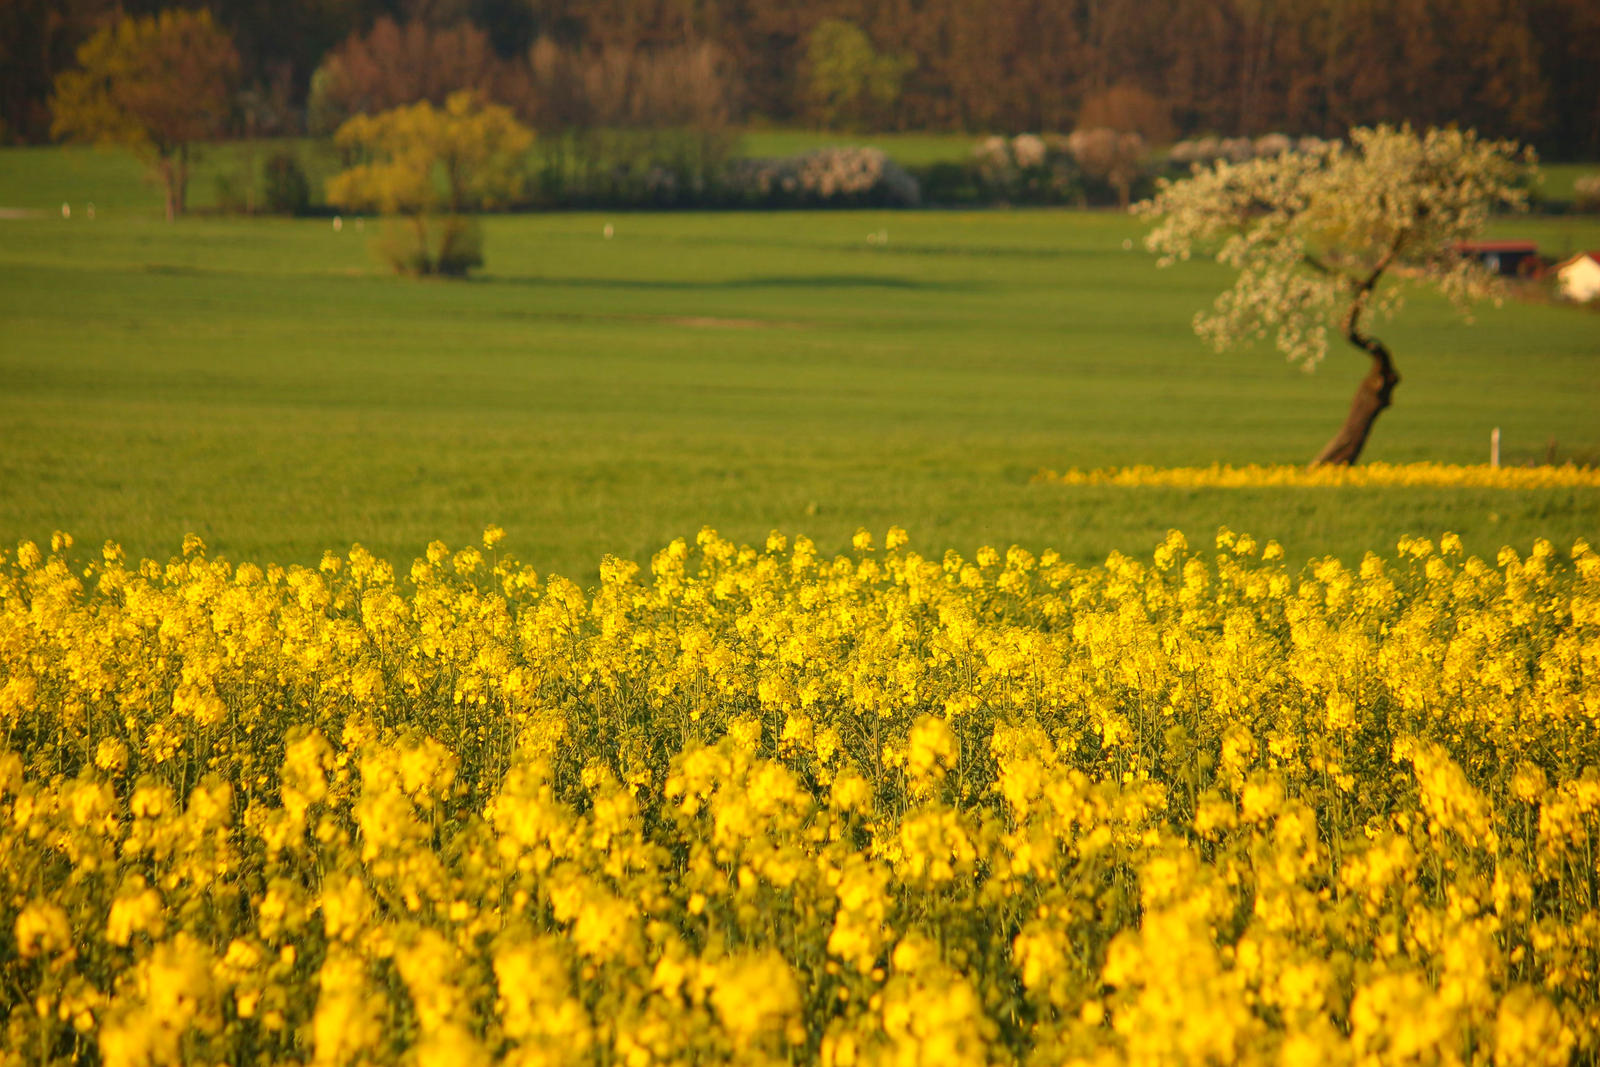 Rape field in front of an apple tree in spring by LoveForDetails